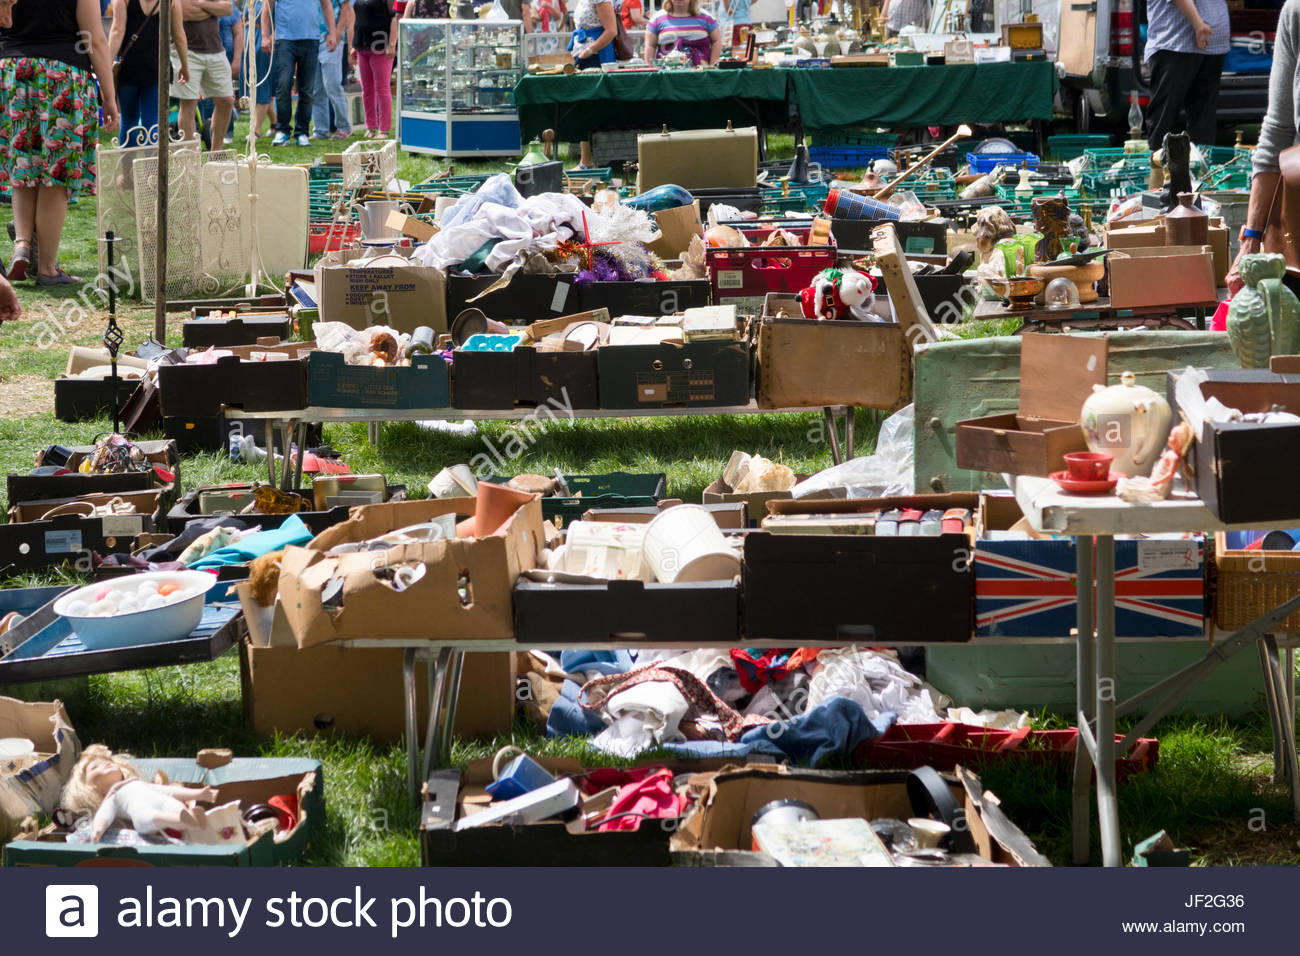 Close Up Of Stalls At Outdoor Secondhand Flea Market - Stock Image